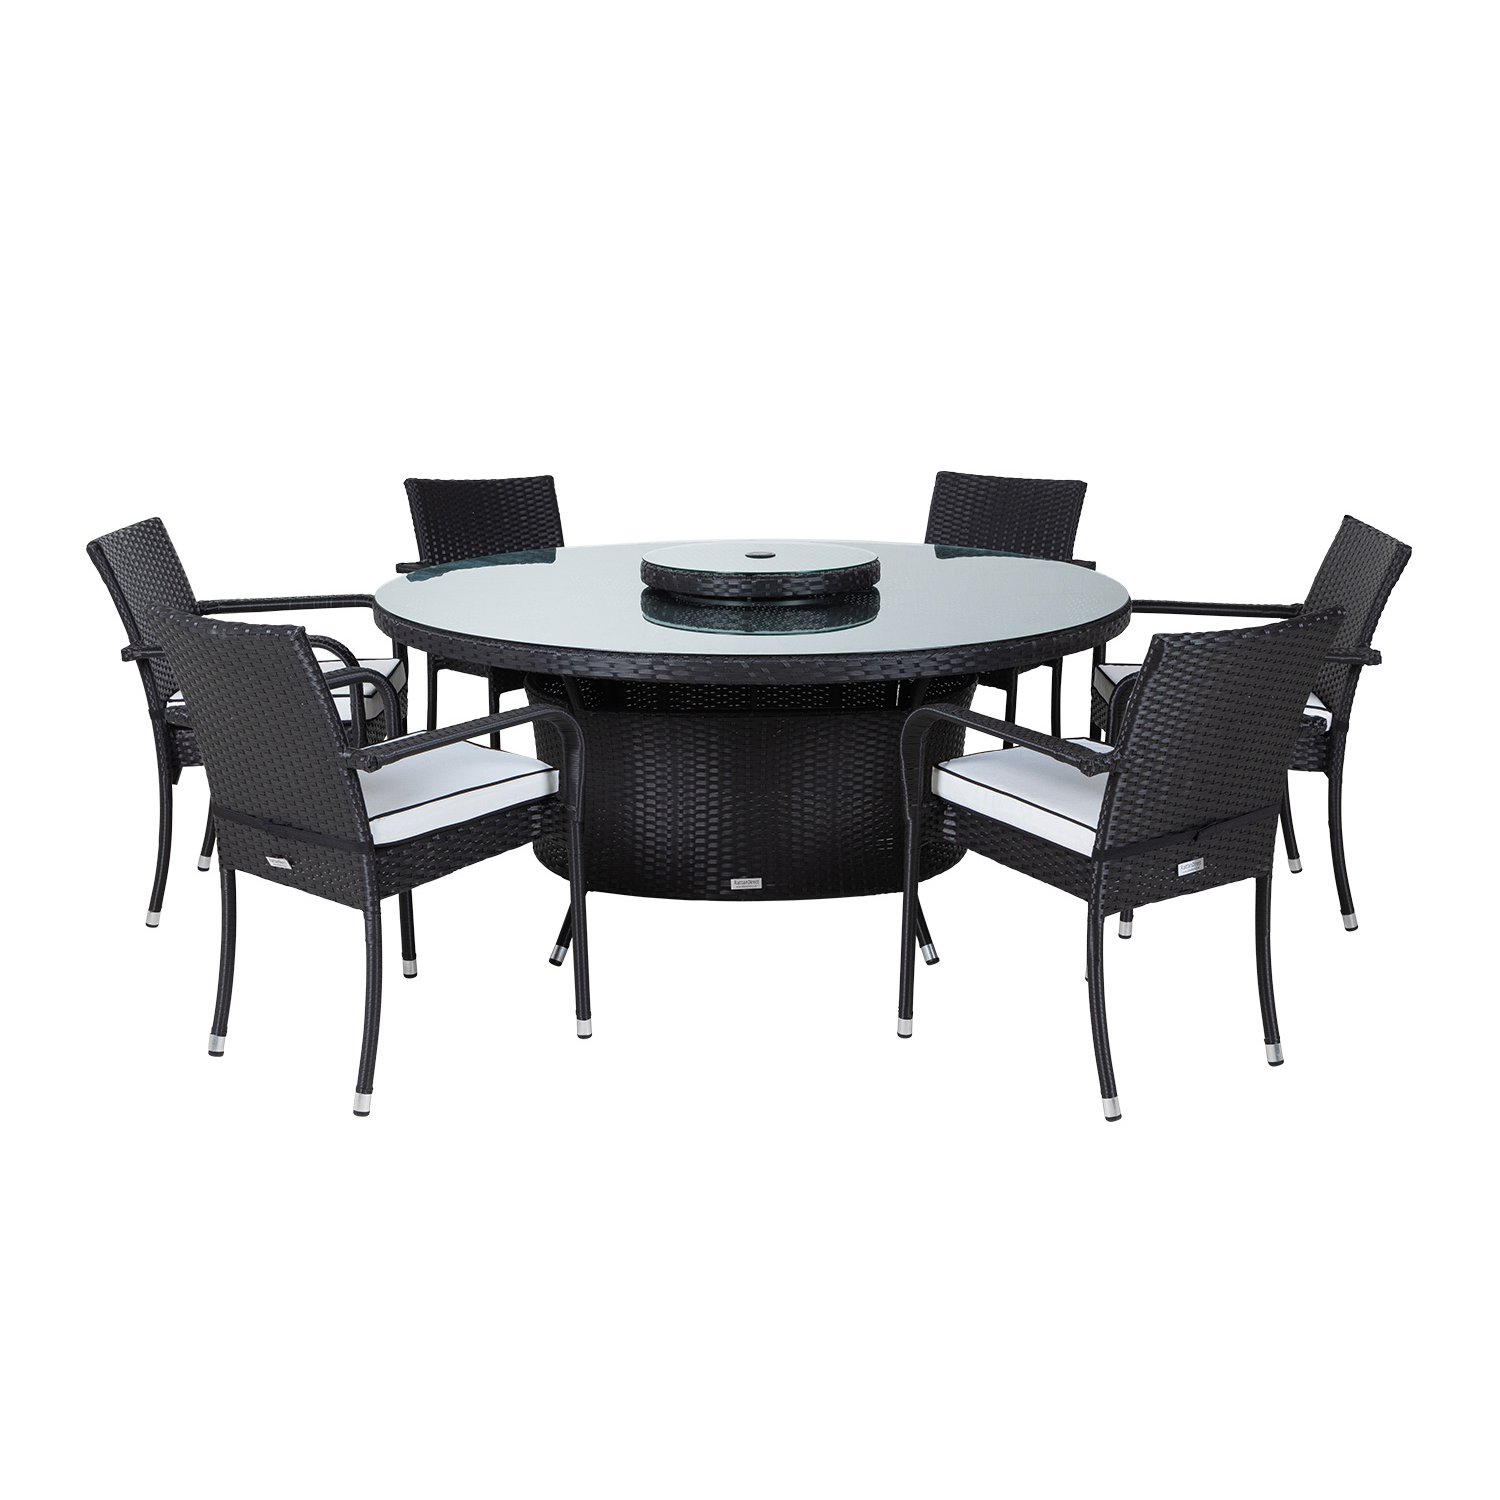 image-Roma 6 Rattan Garden Chairs, Large Round Table and Lazy Susan Set in Black and Vanilla